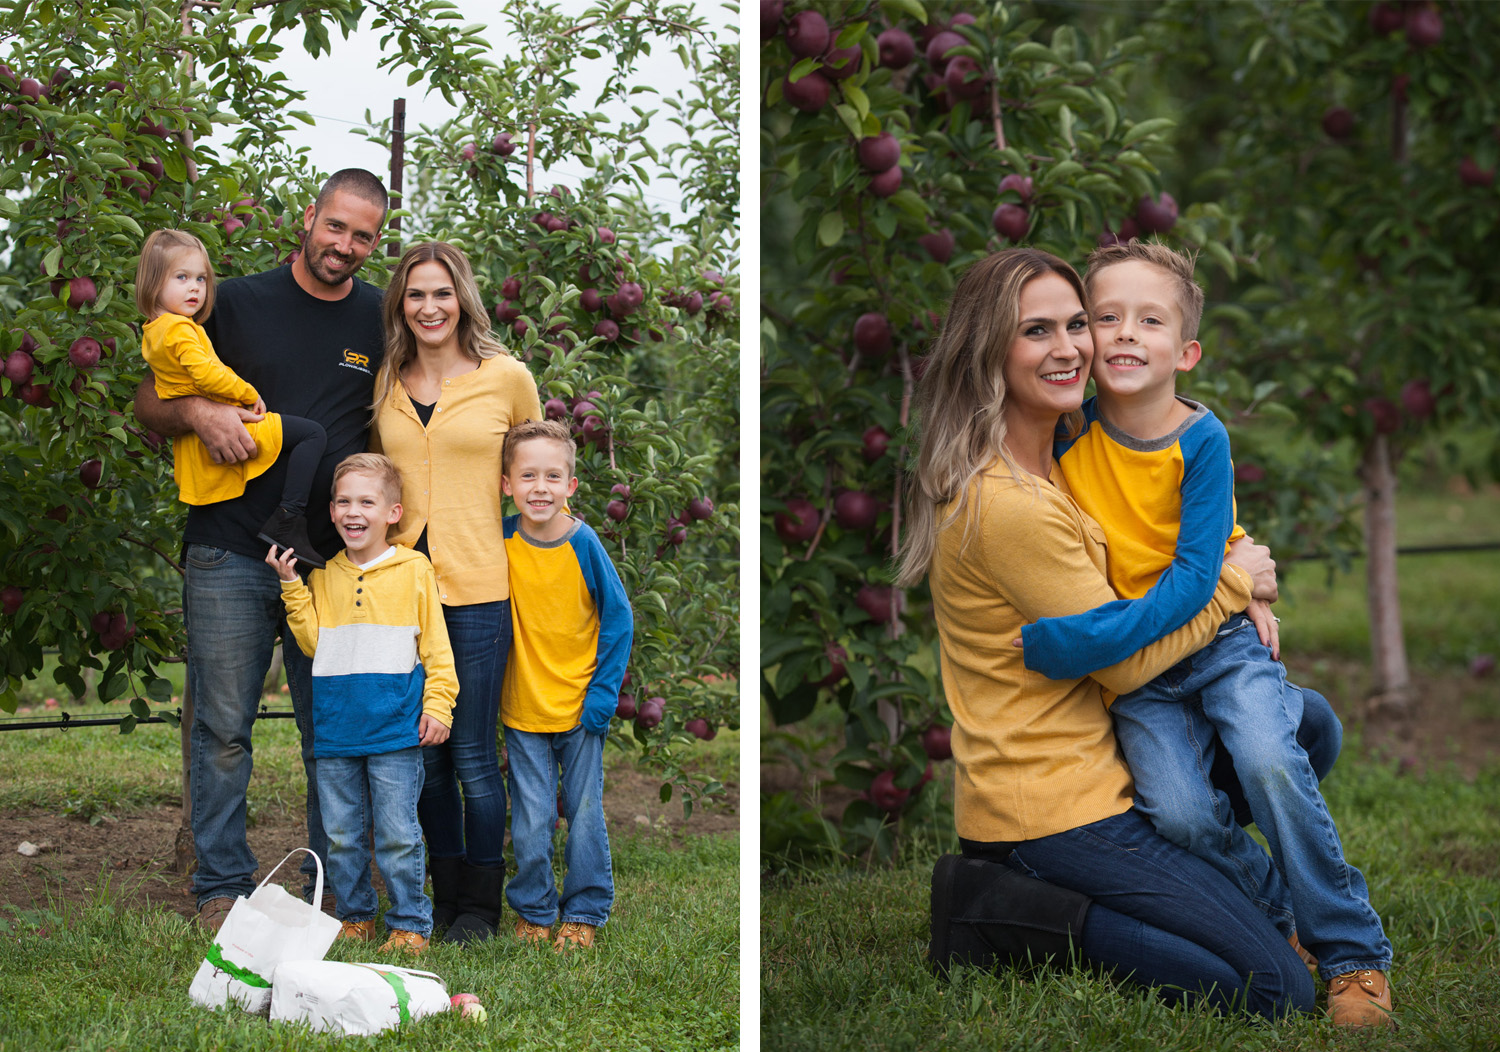 Collage of a family wearing blue & yellow laughing together in front of the apple trees at Park Hill Orchard in Easthampton.